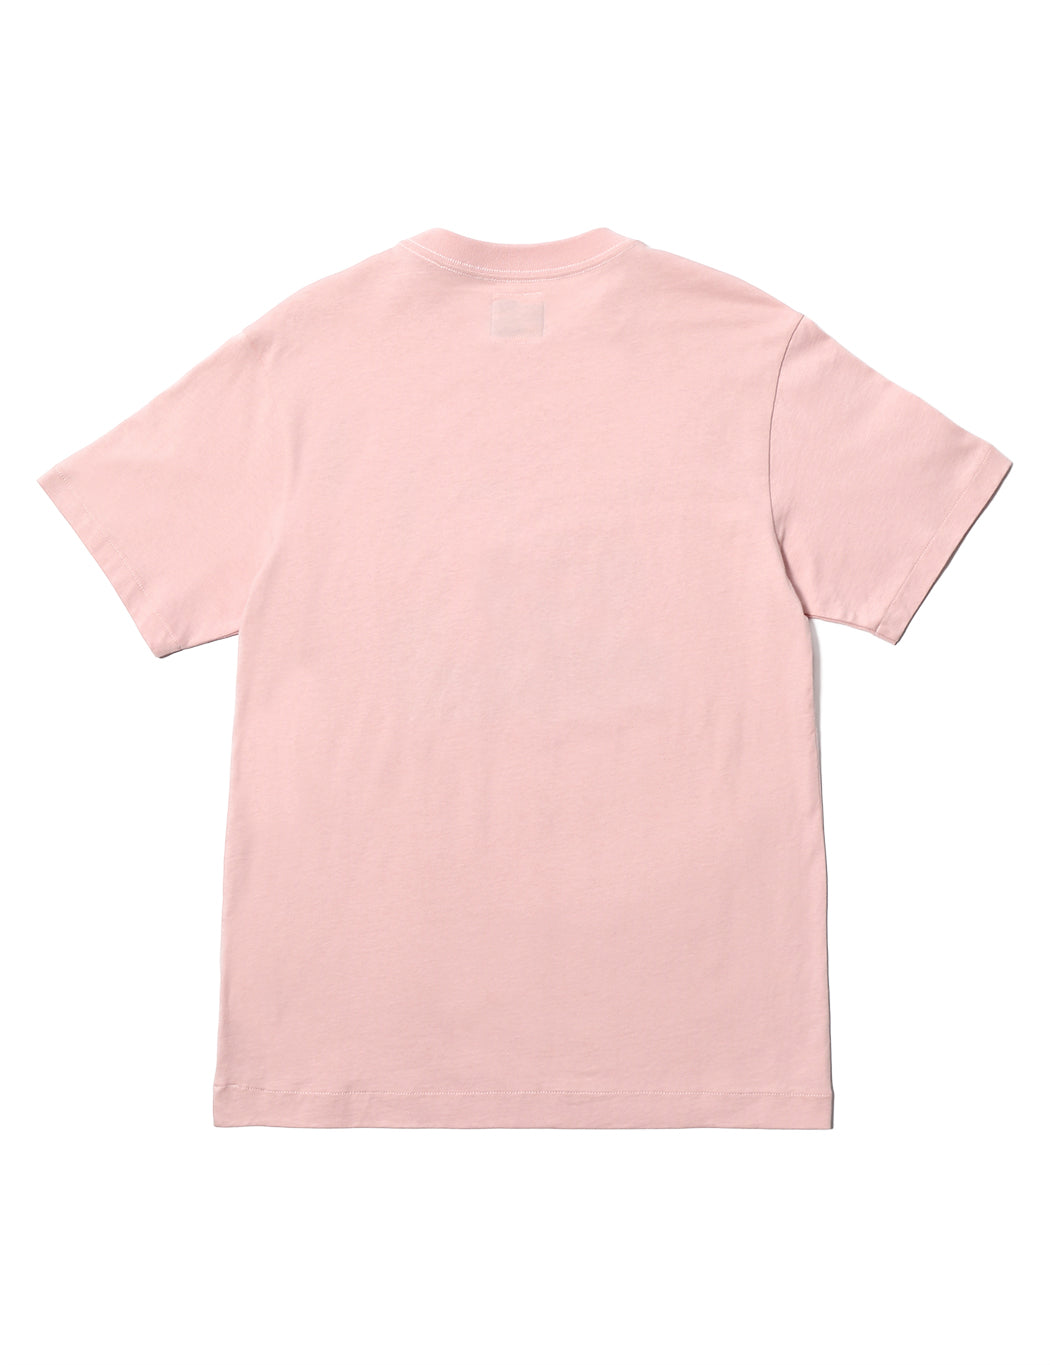 Circus E S/S T-Shirt - Rose Pink - Eine London by Ben Eine